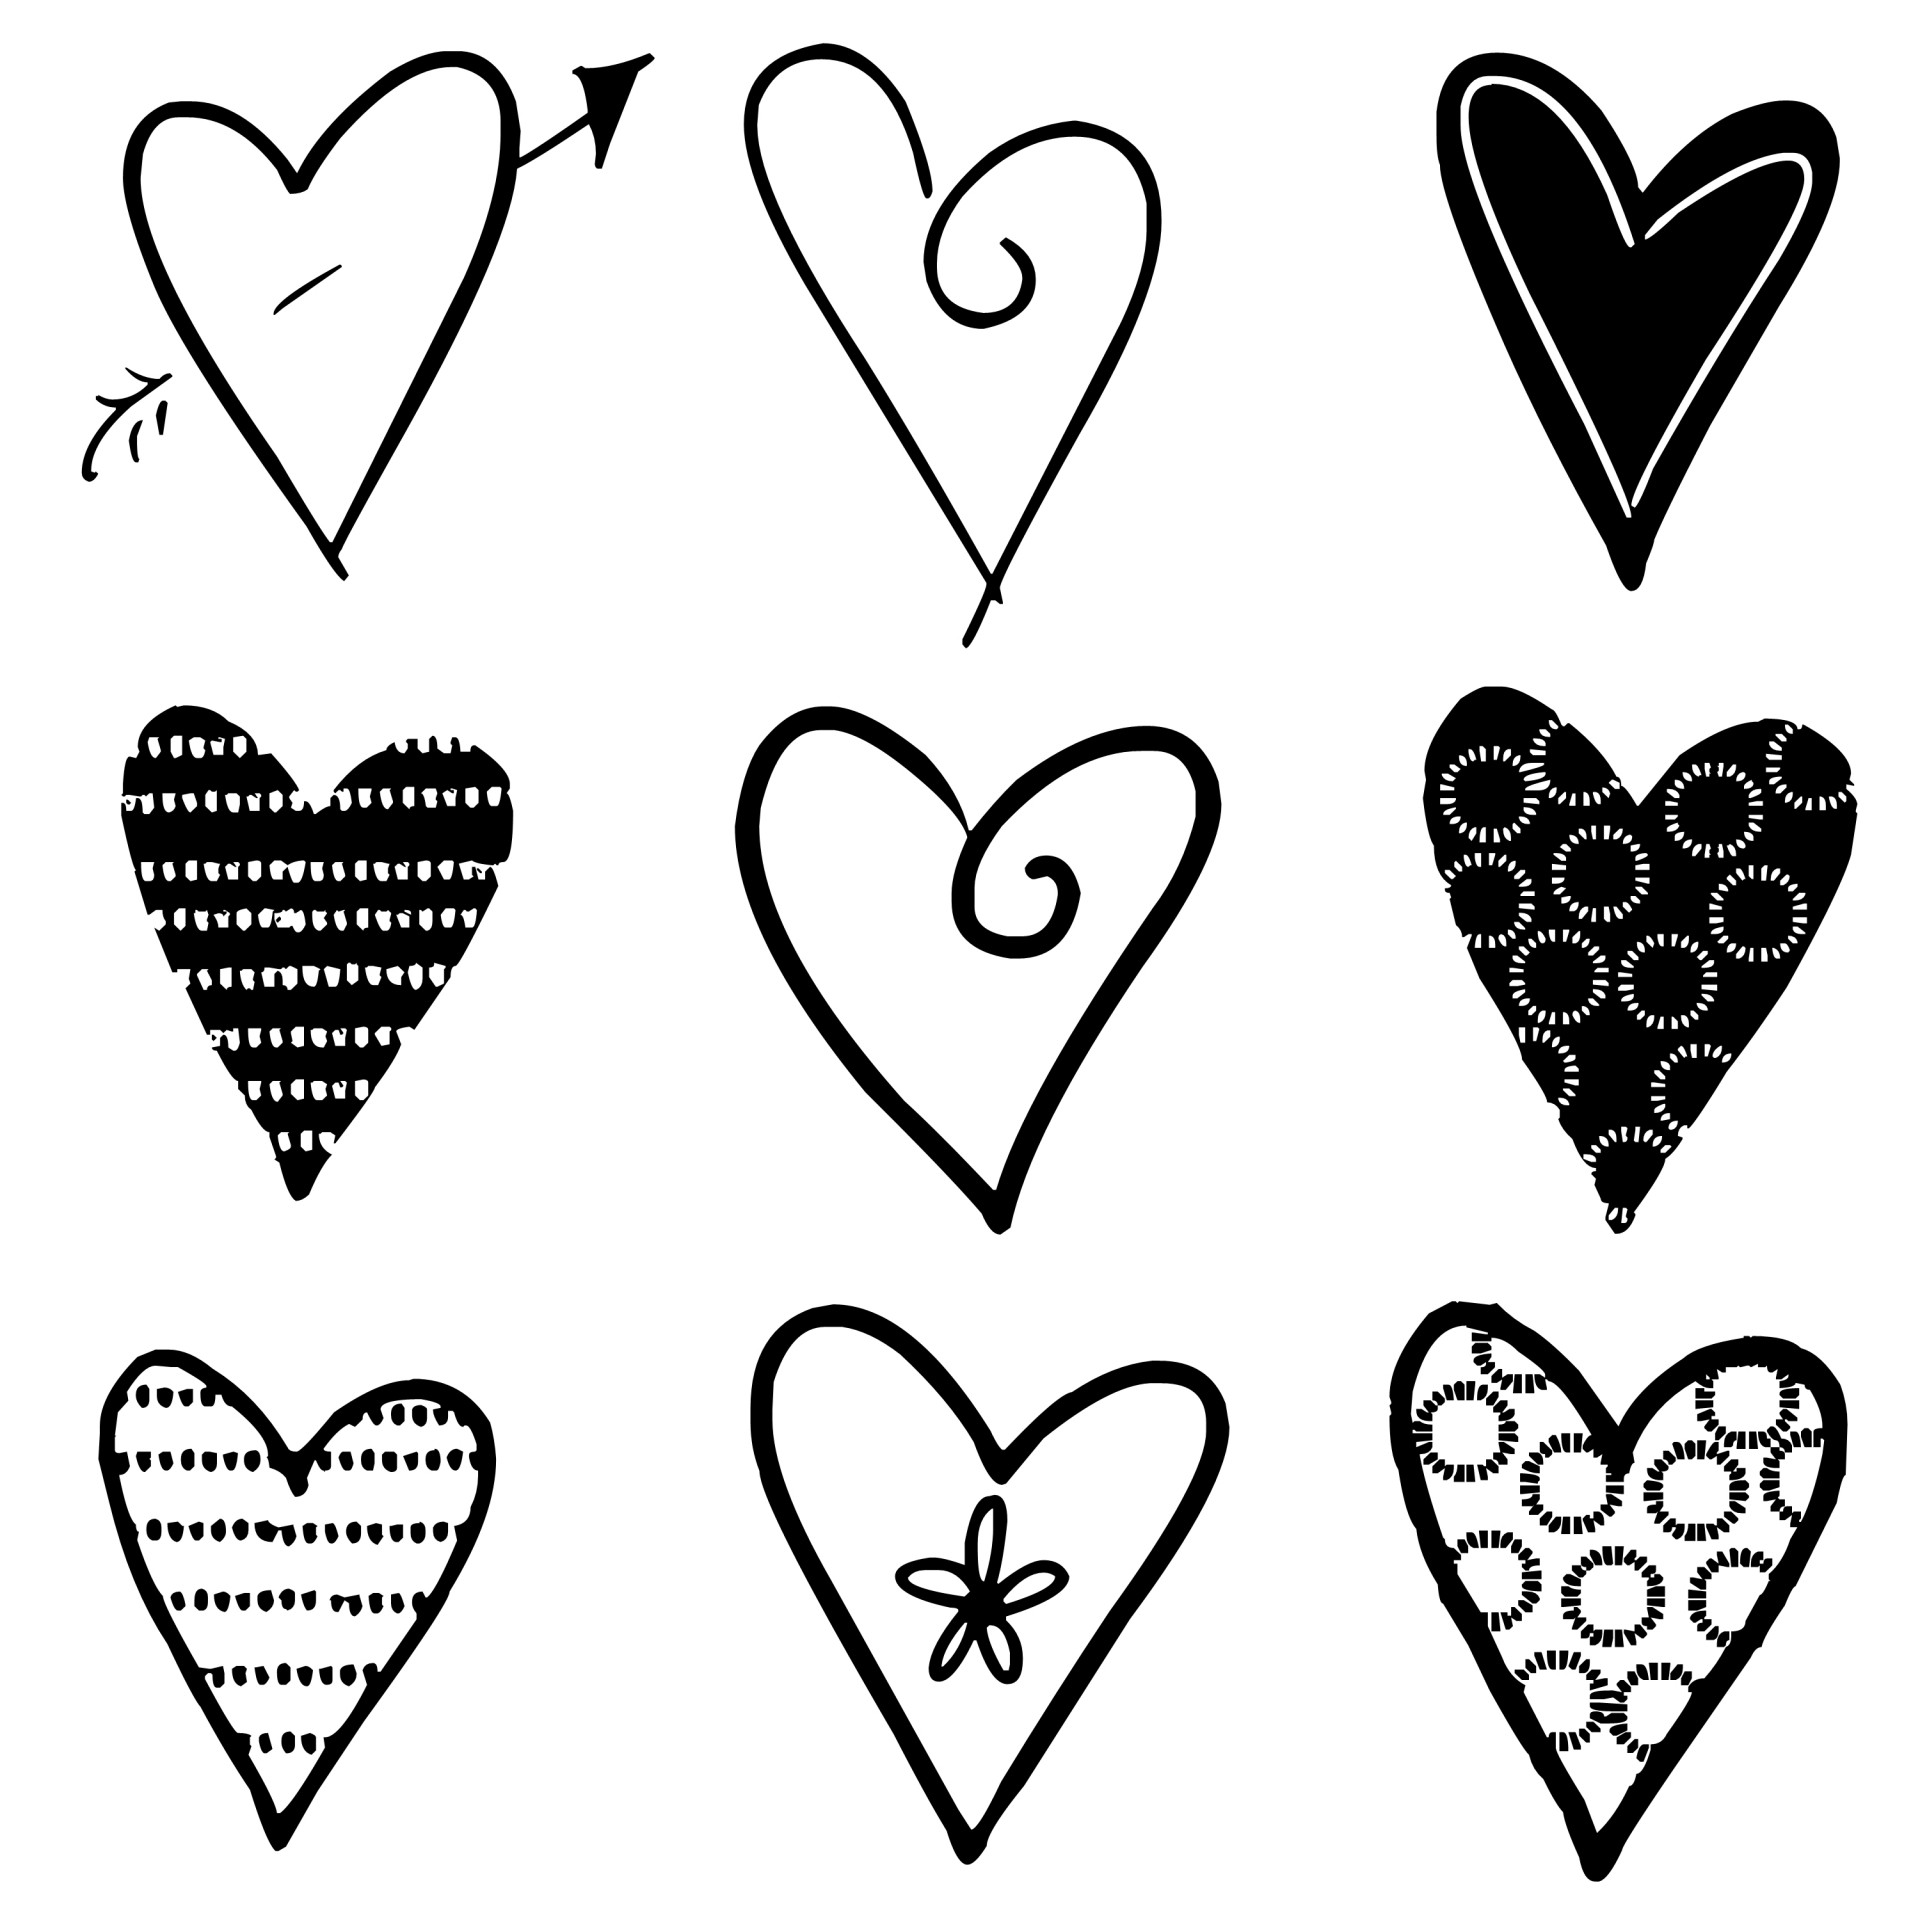 Hearts Silhouettes Black Free Stock Photo